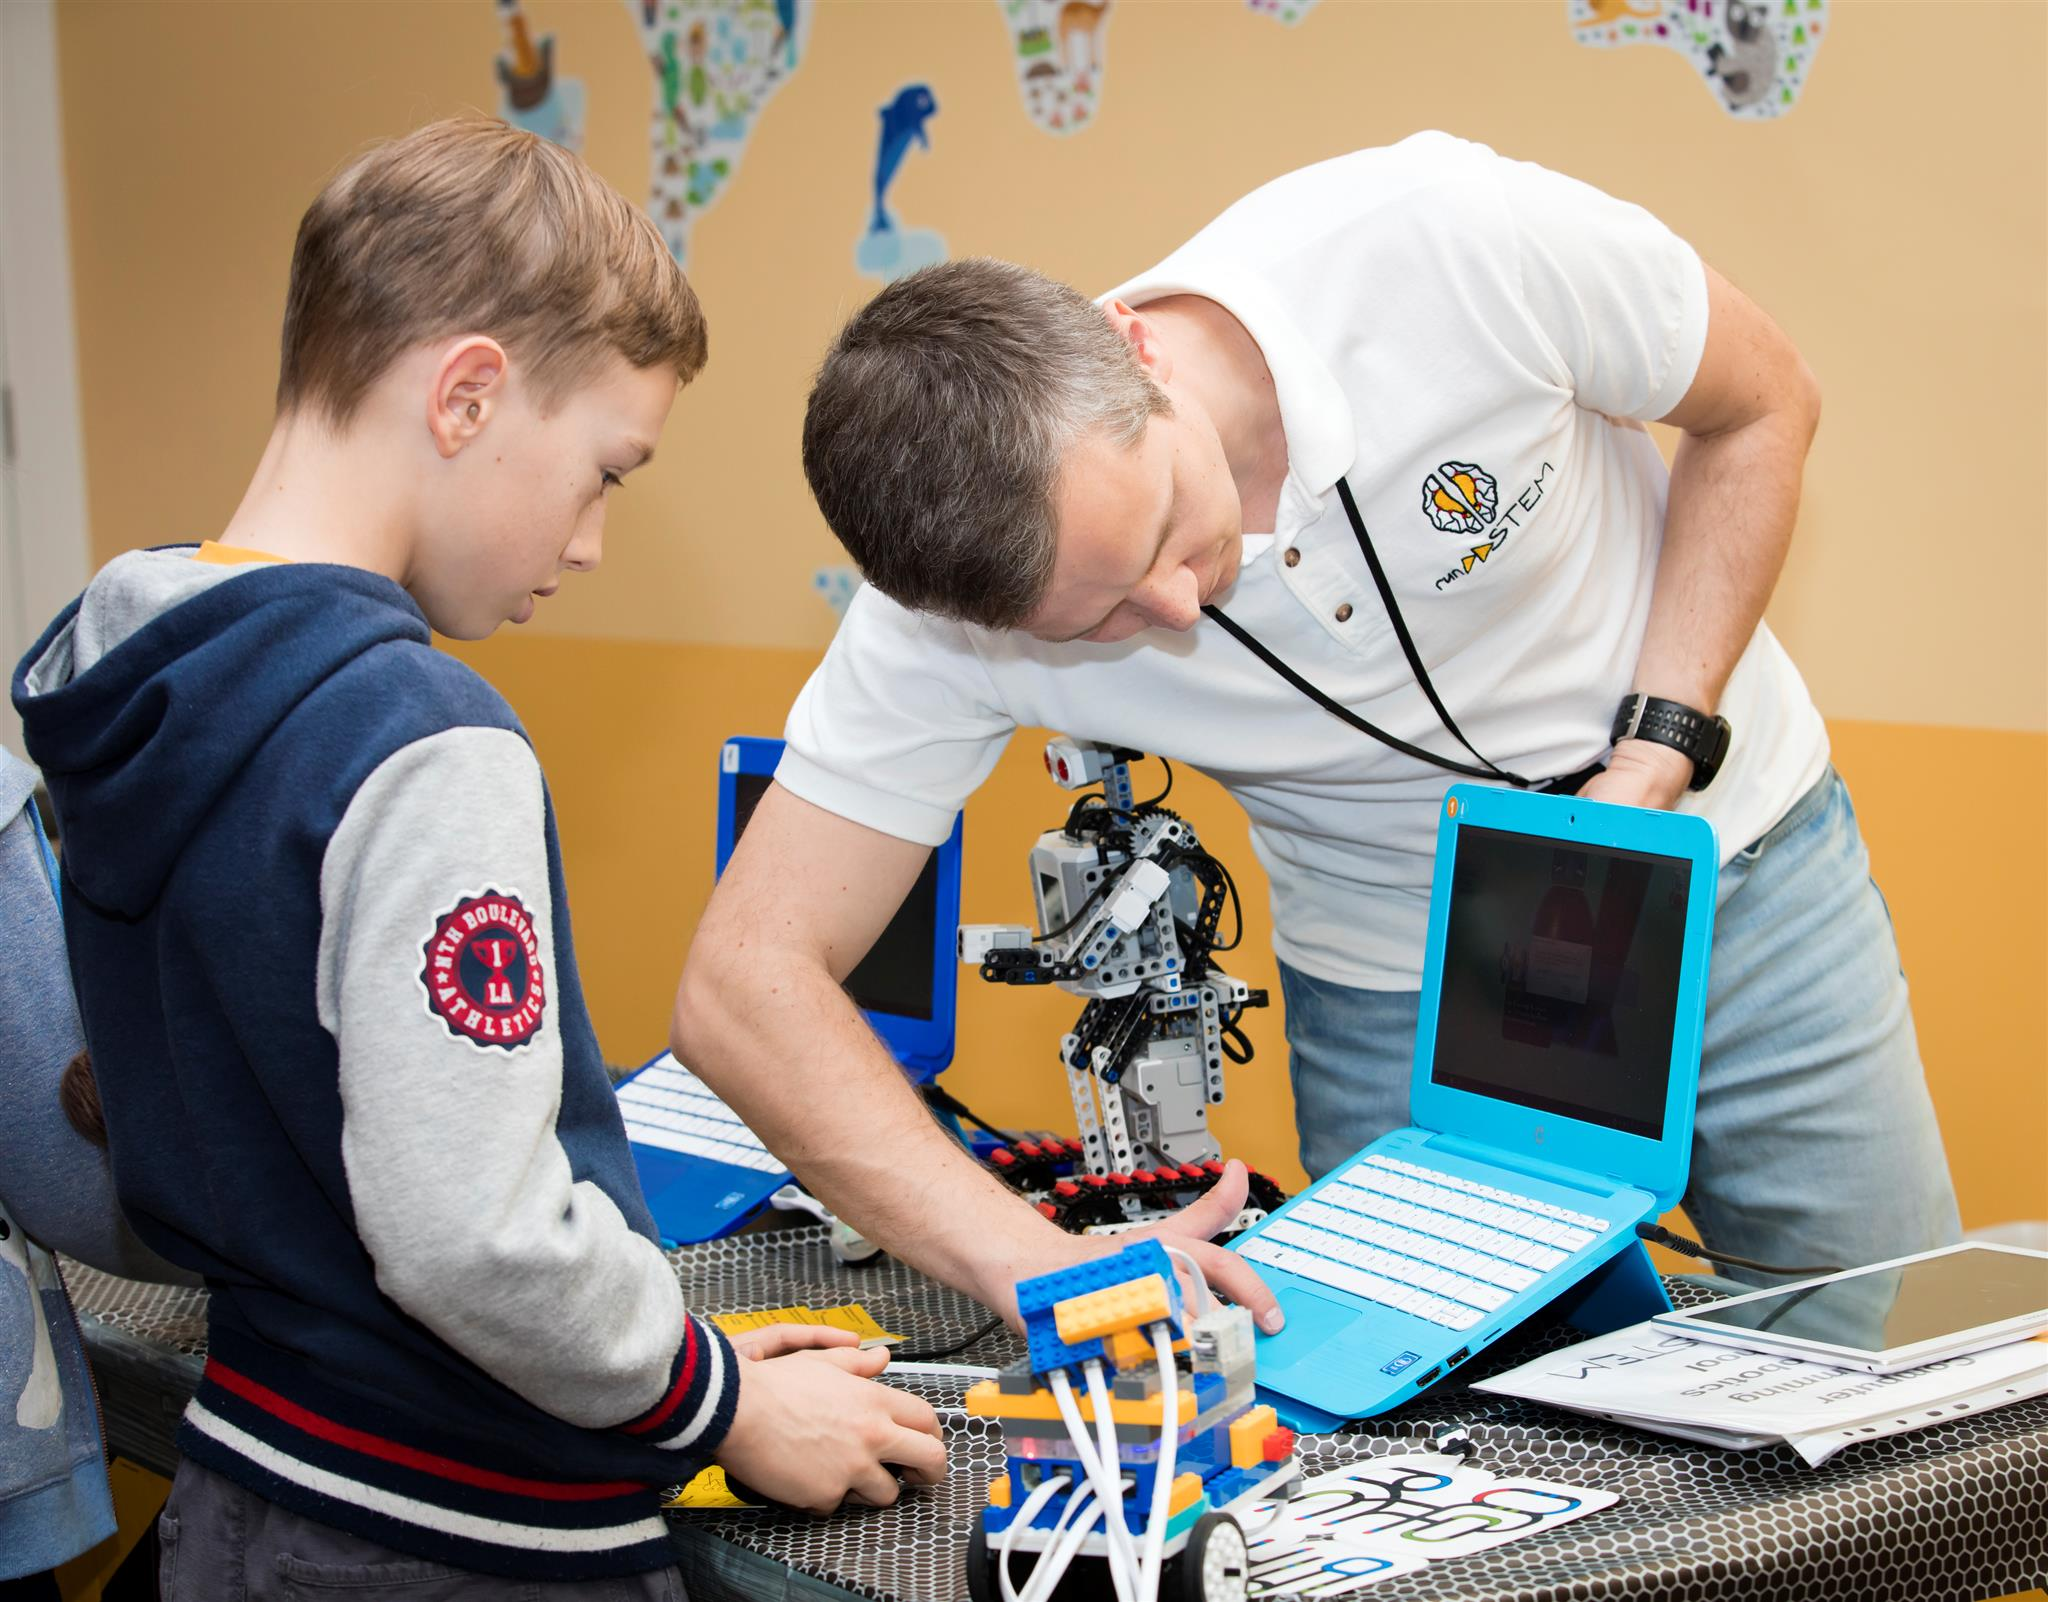 RUNSTEM Educator explains to a student how to code a game and shows some robots